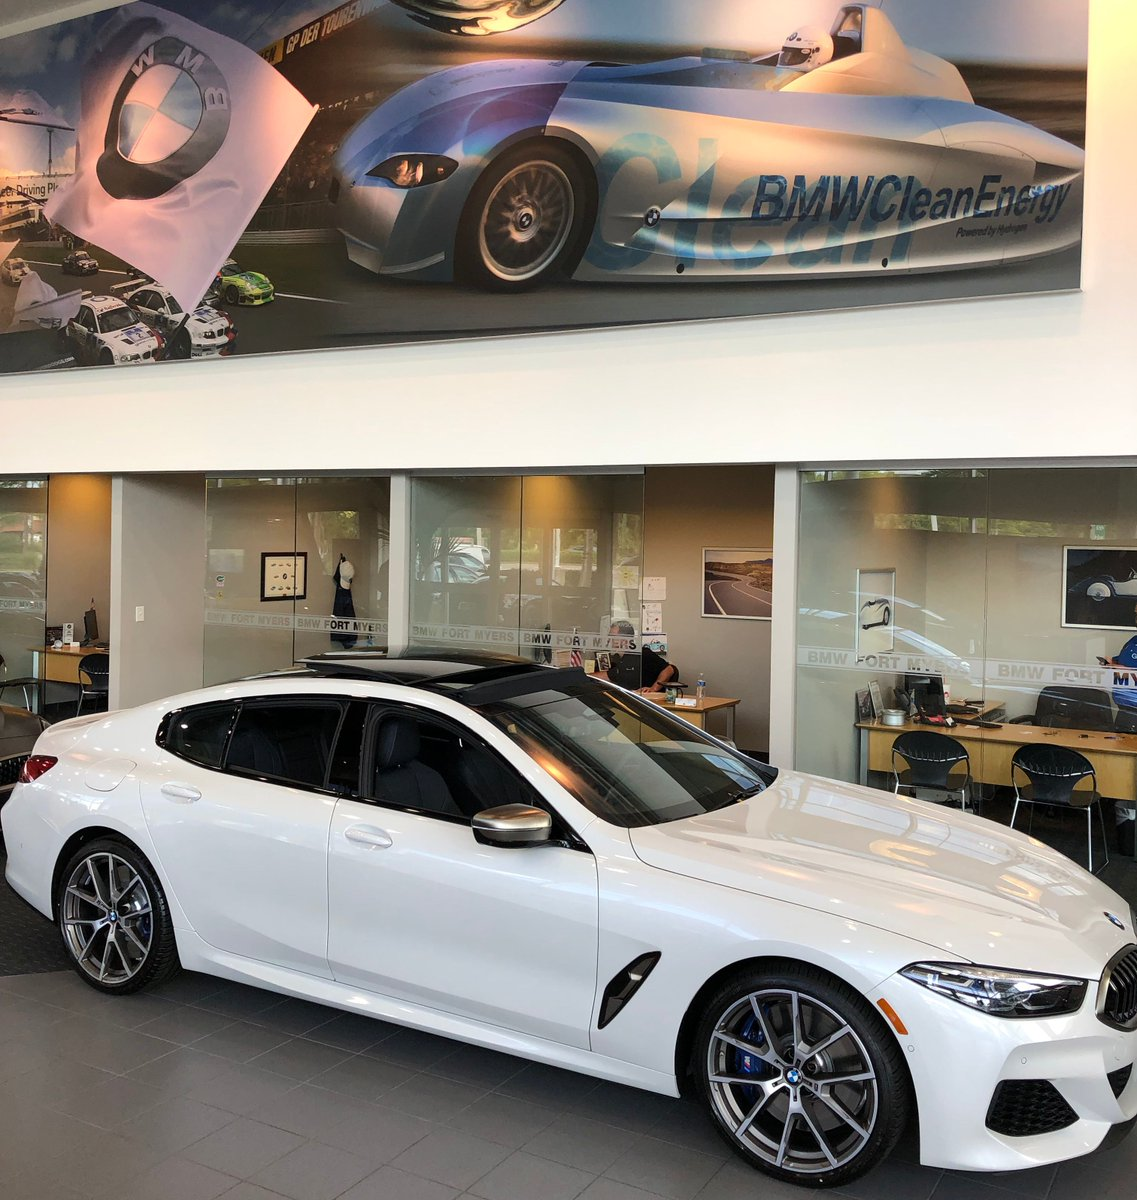 Bmw Of Fort Myers On Twitter Handsome Spacious And More Powerful Than You Think The 2020 Bmw M850 Gran Coupe Is Now Available At Bmw Of Fort Myers Schedule Your Test Drive